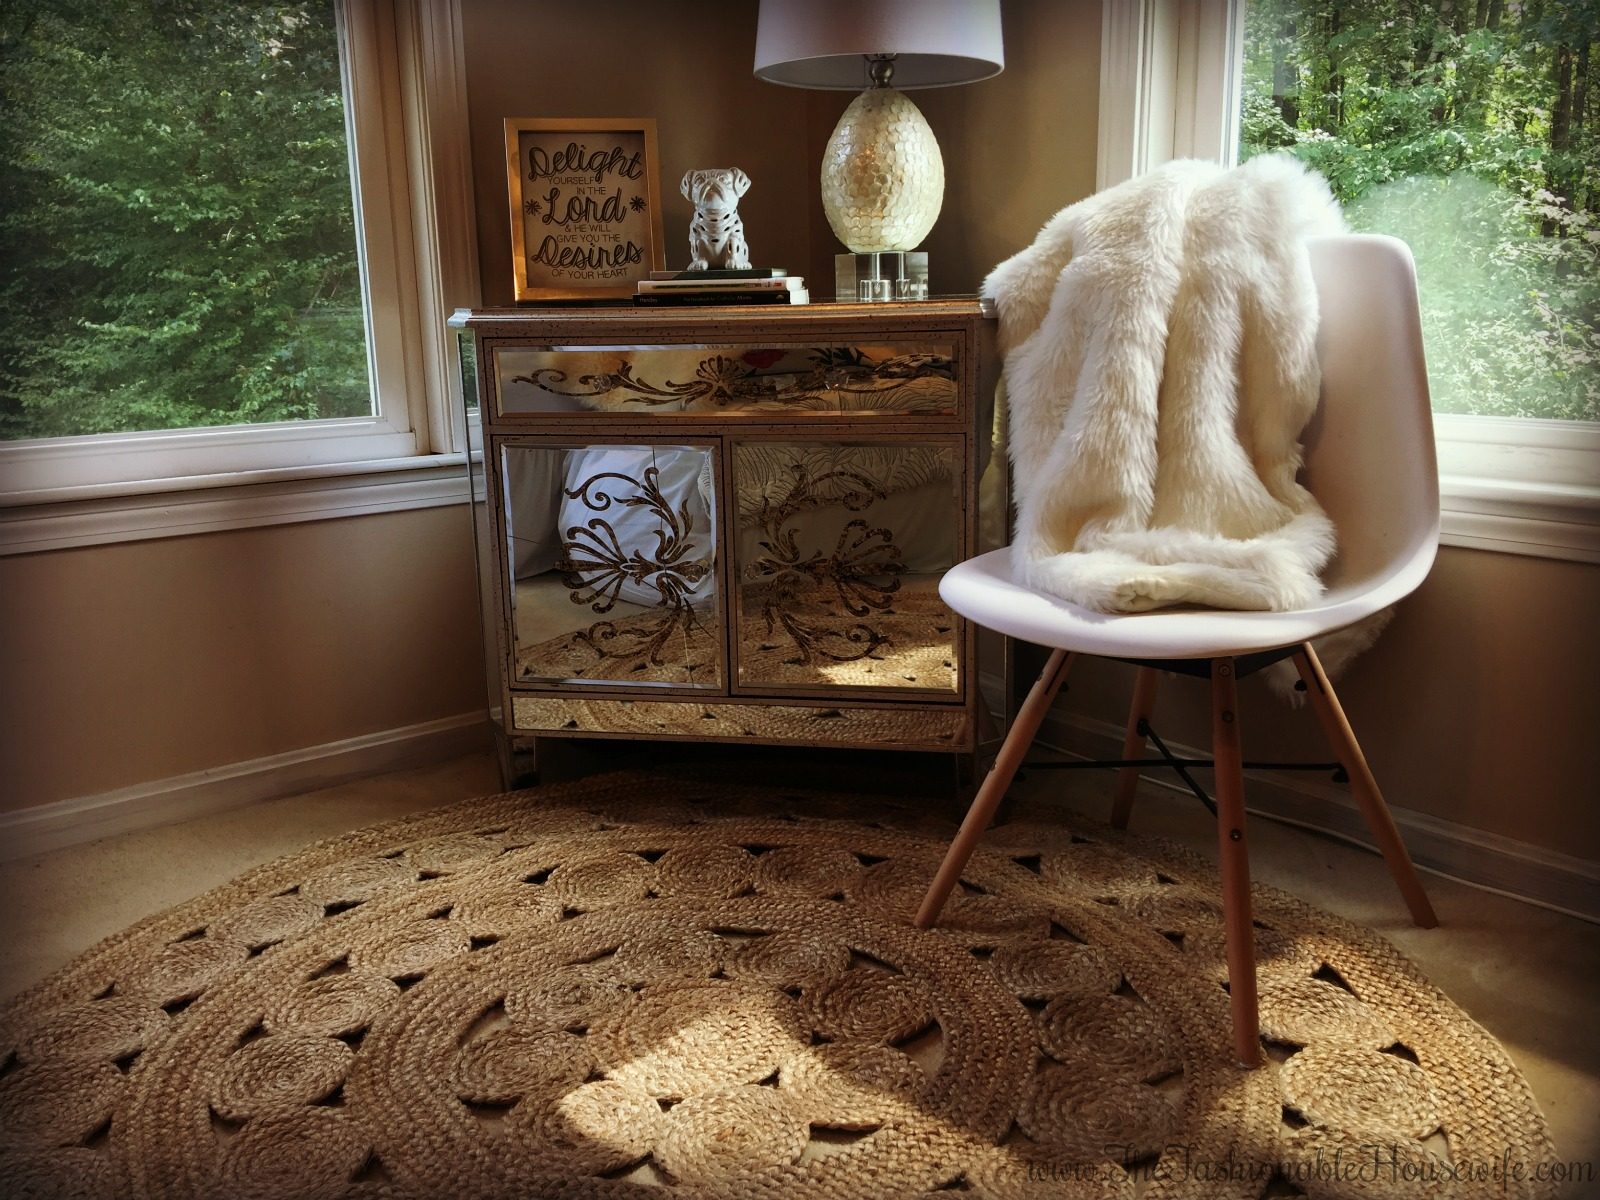 Home Decor Bedroom Update With Serena Lily Jute Rug The Fashionable Housewife Howldb